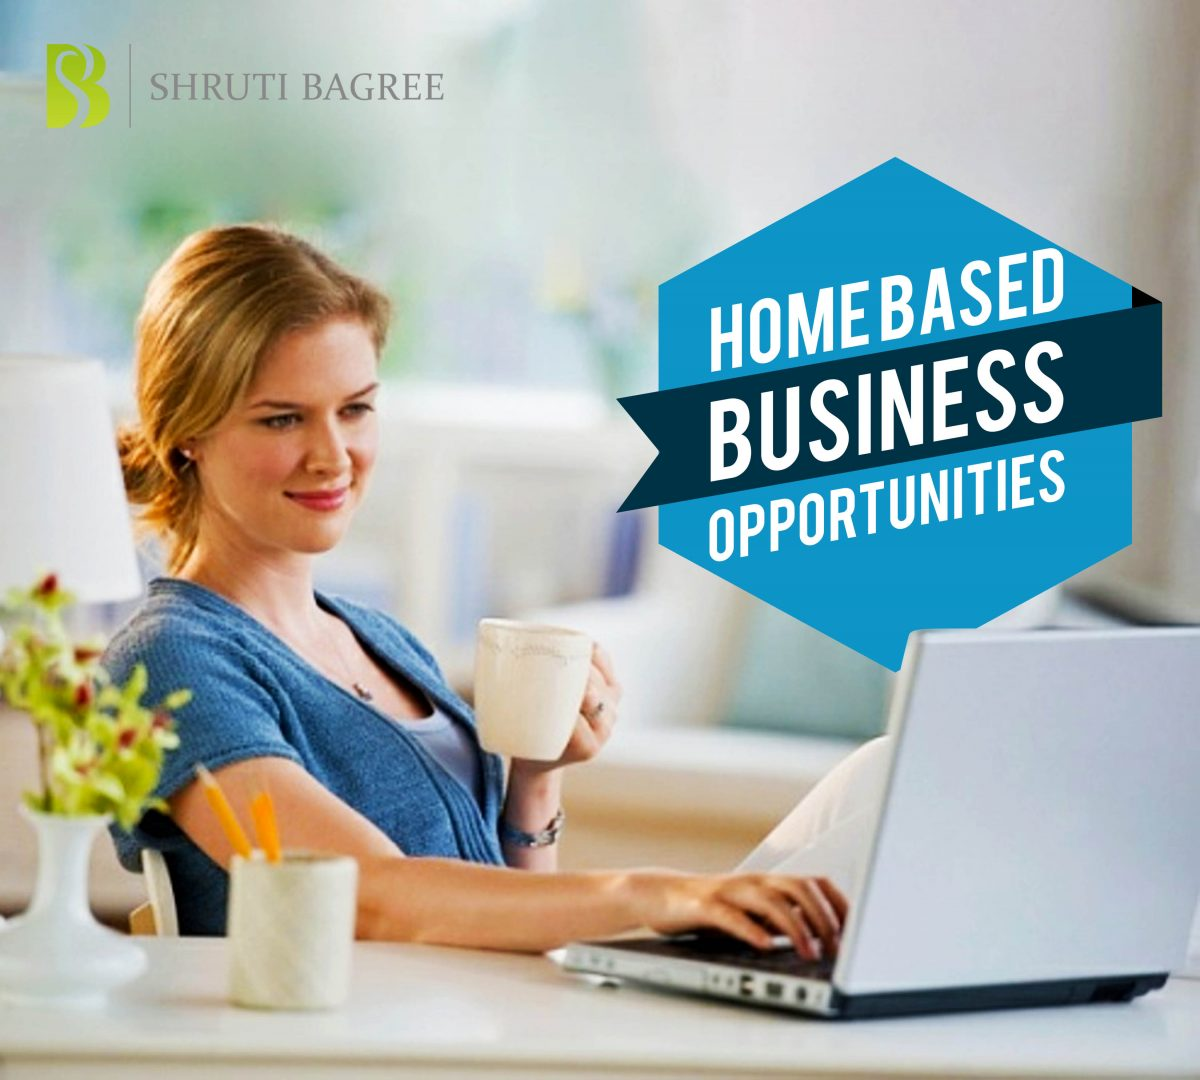 Gain Professional Recognition through Home Based Business Opportunities